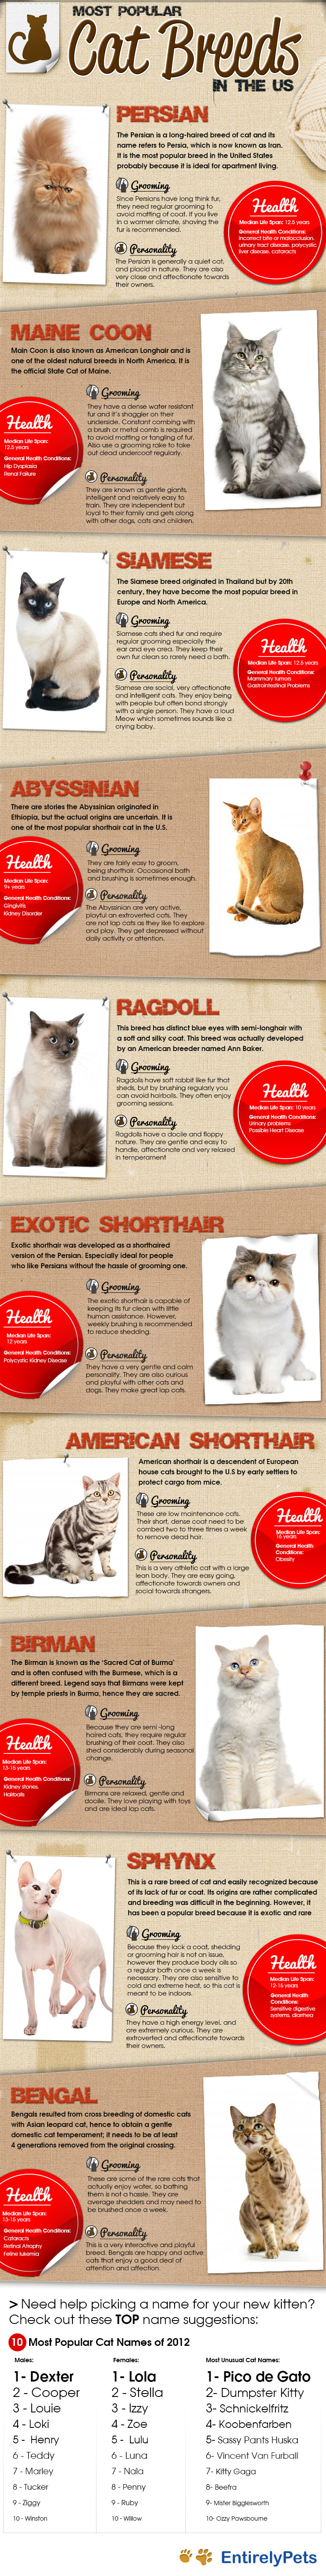 Most Popular Cat Breeds in the US